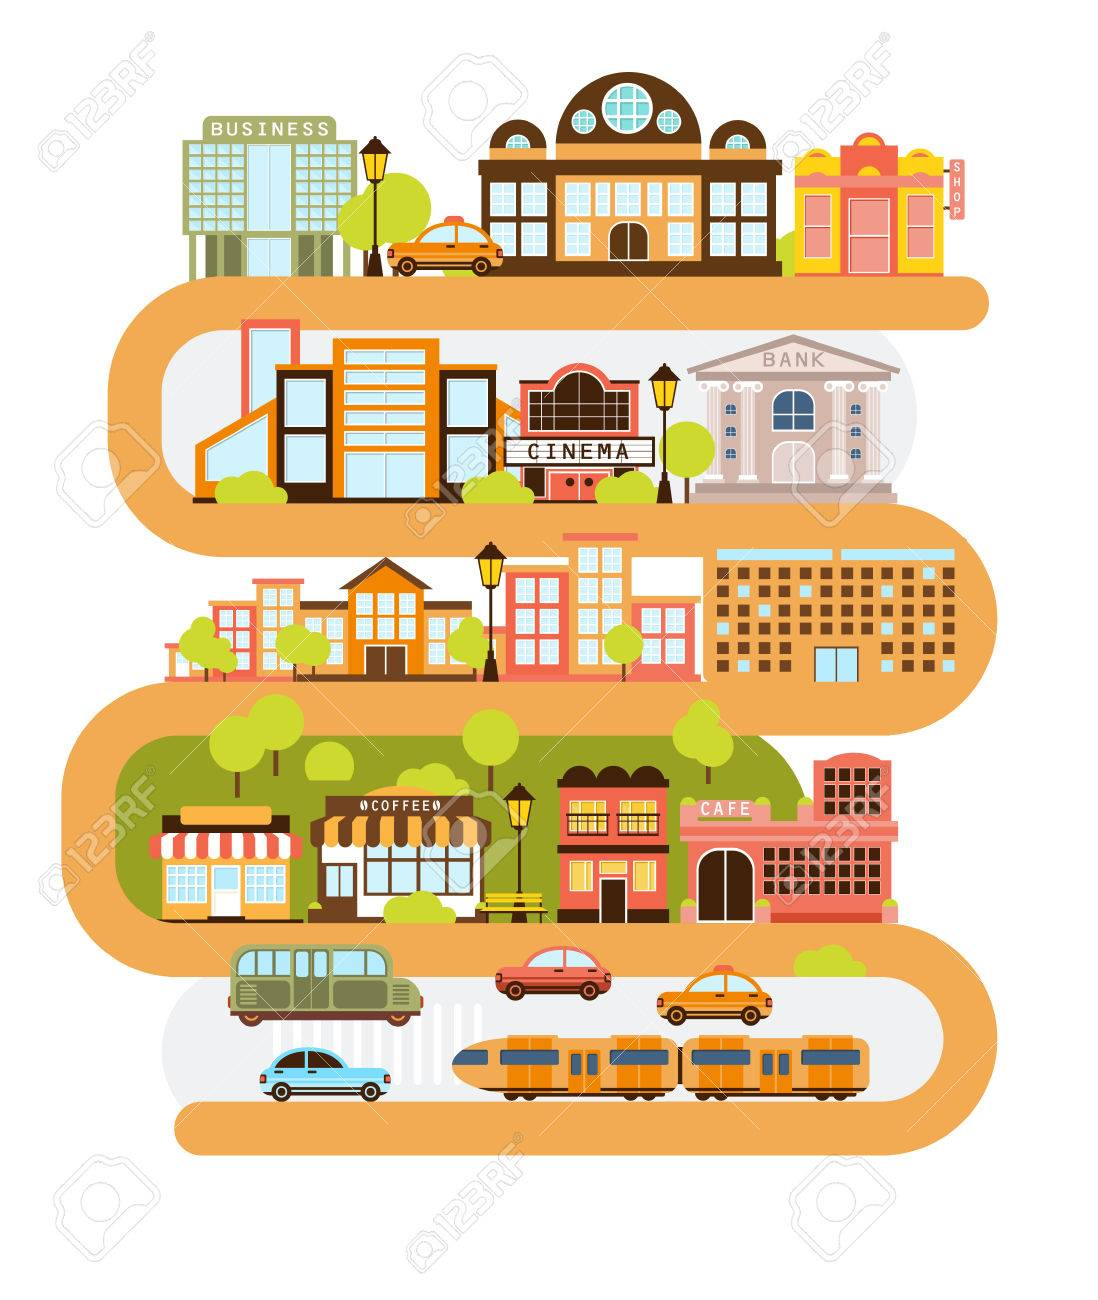 City Infrastructure And All The Urban Buildings Lined With The Curved Orange Line In Graphic Illustration. Modern Town Architecture and Common Services Separated In Blocks One On Top Of Another. Foto de archivo - 65541802